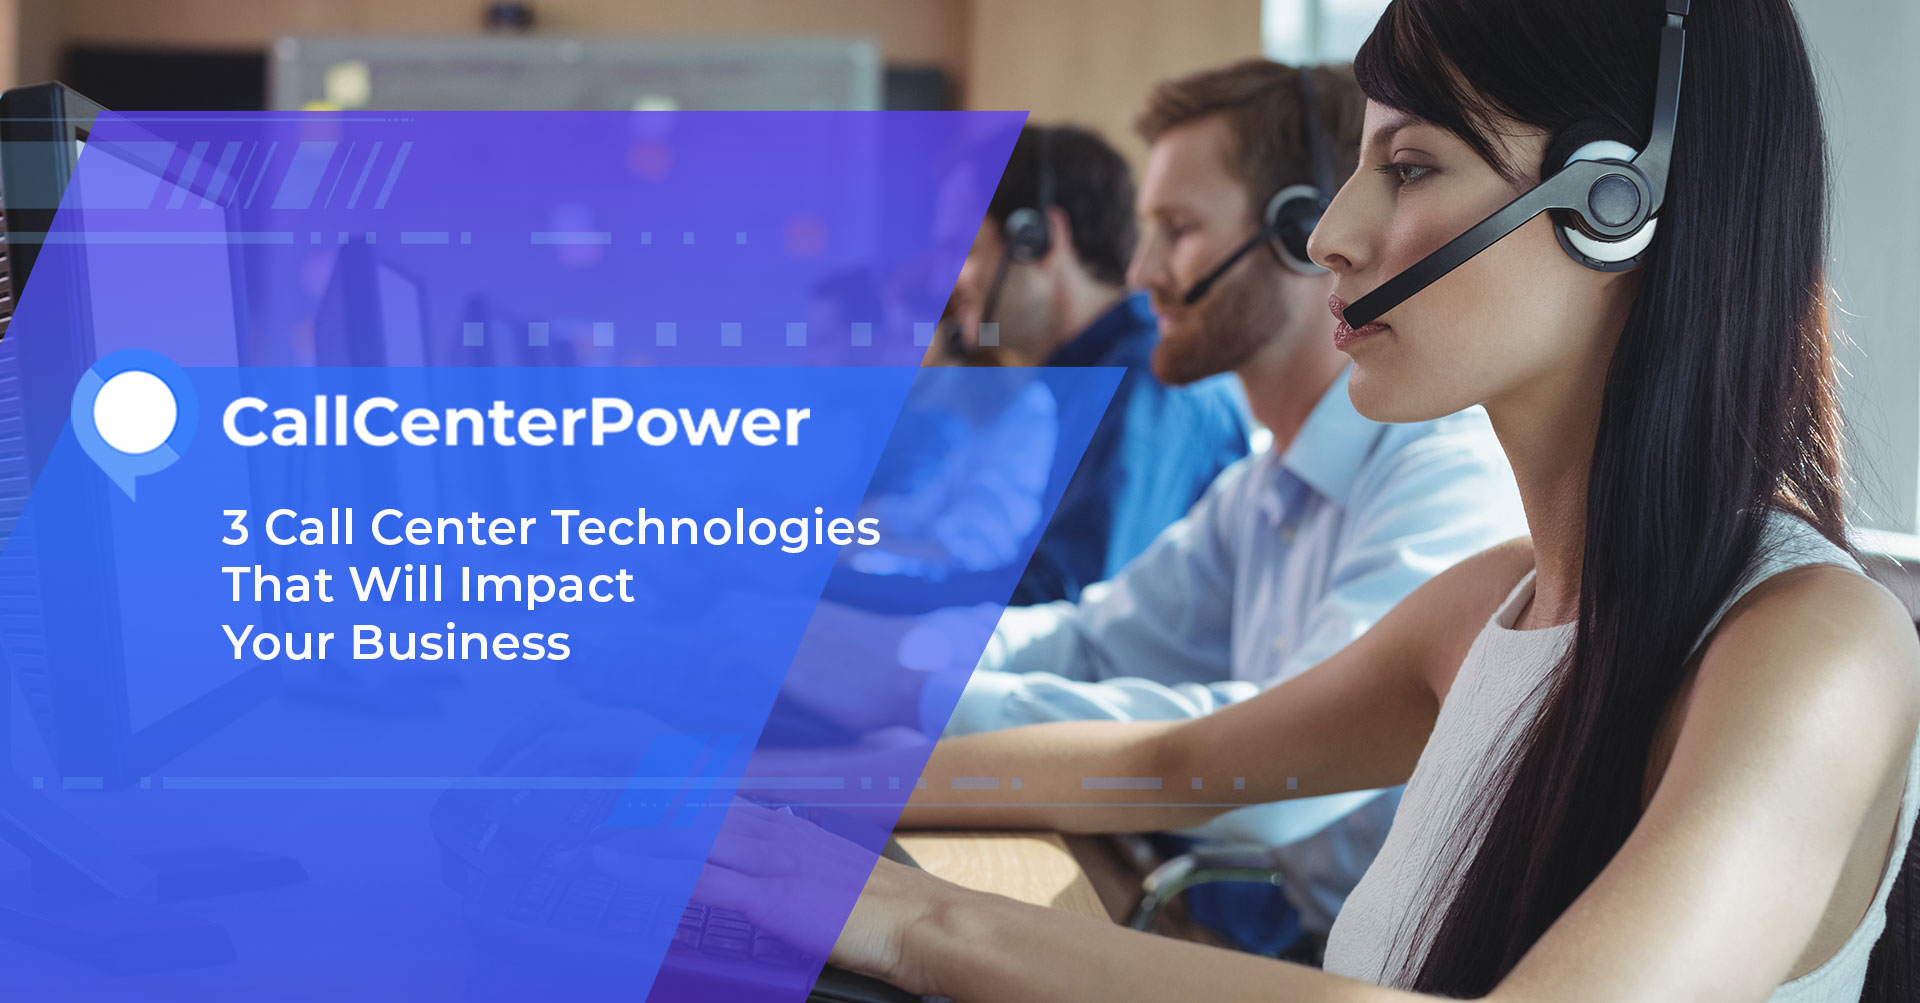 3 Call Center Technologies That Will Impact Your Business